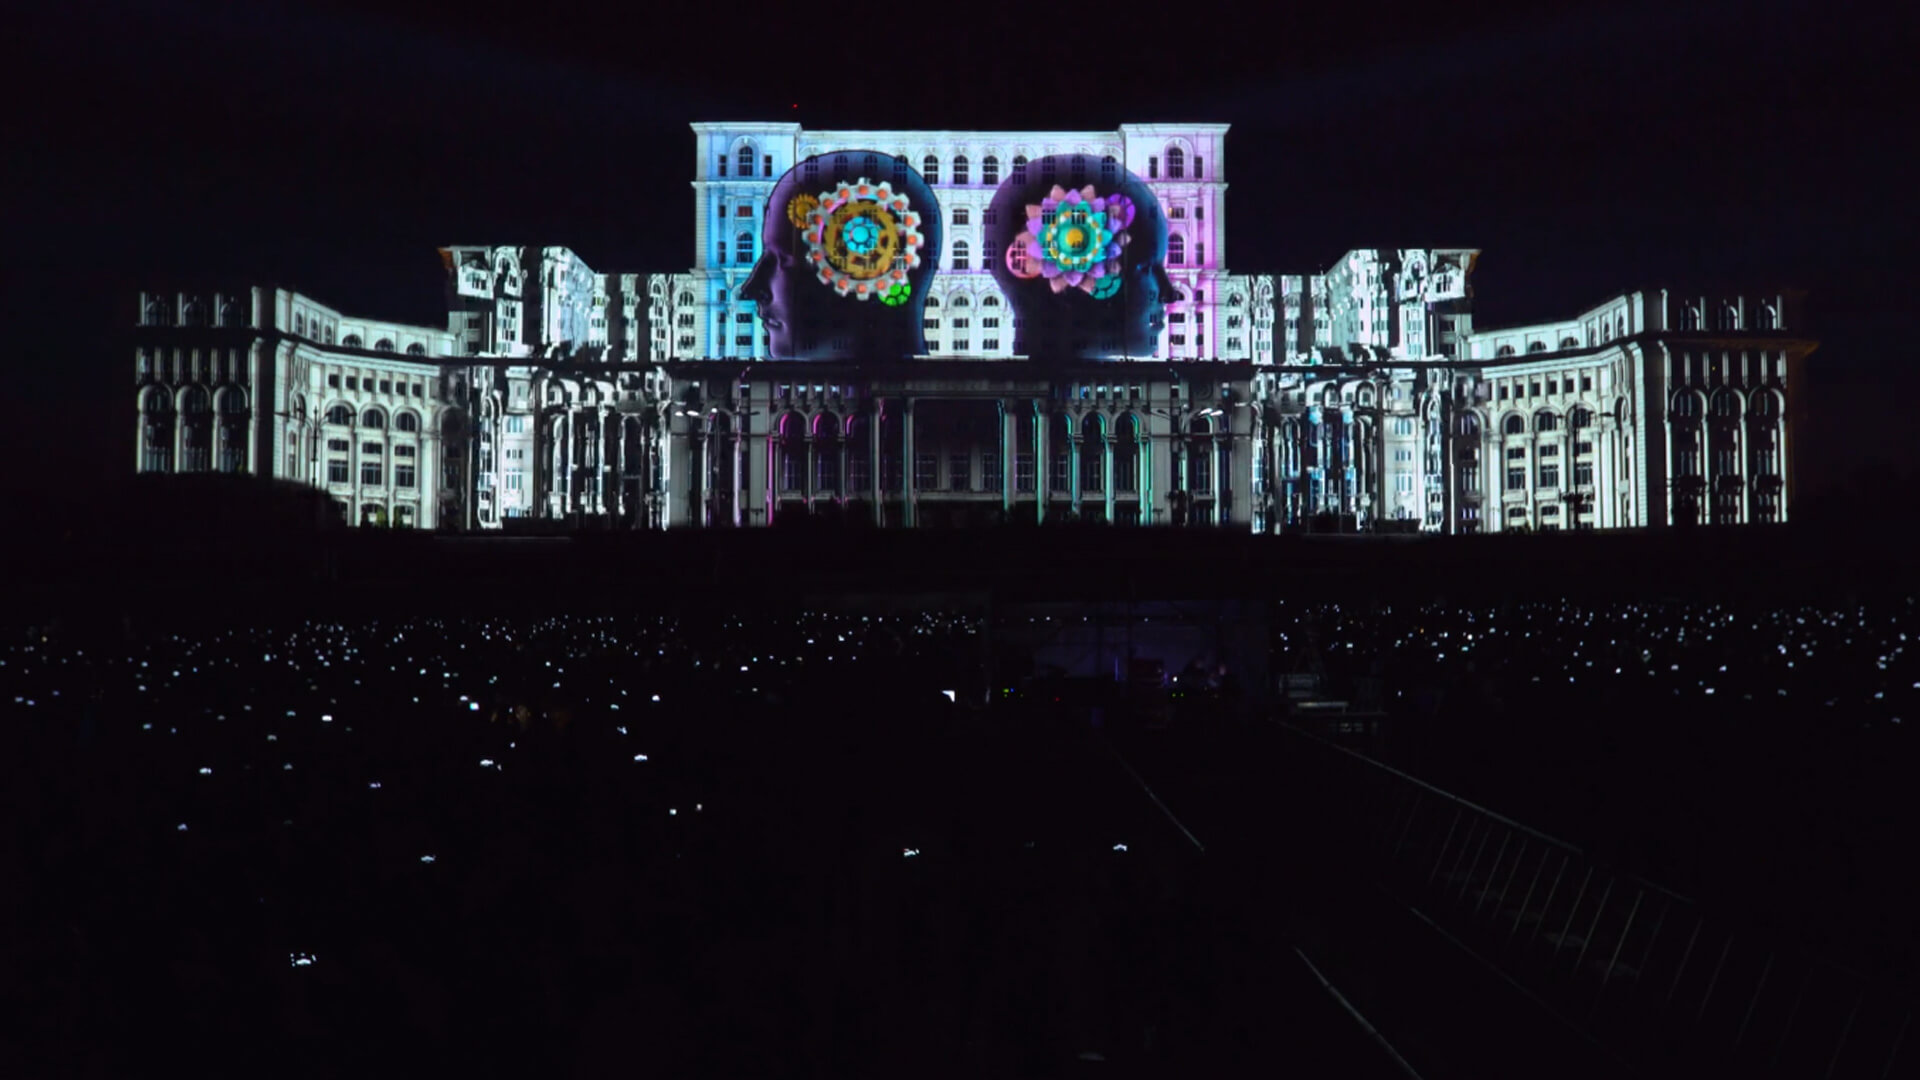 projection-mapping-projector